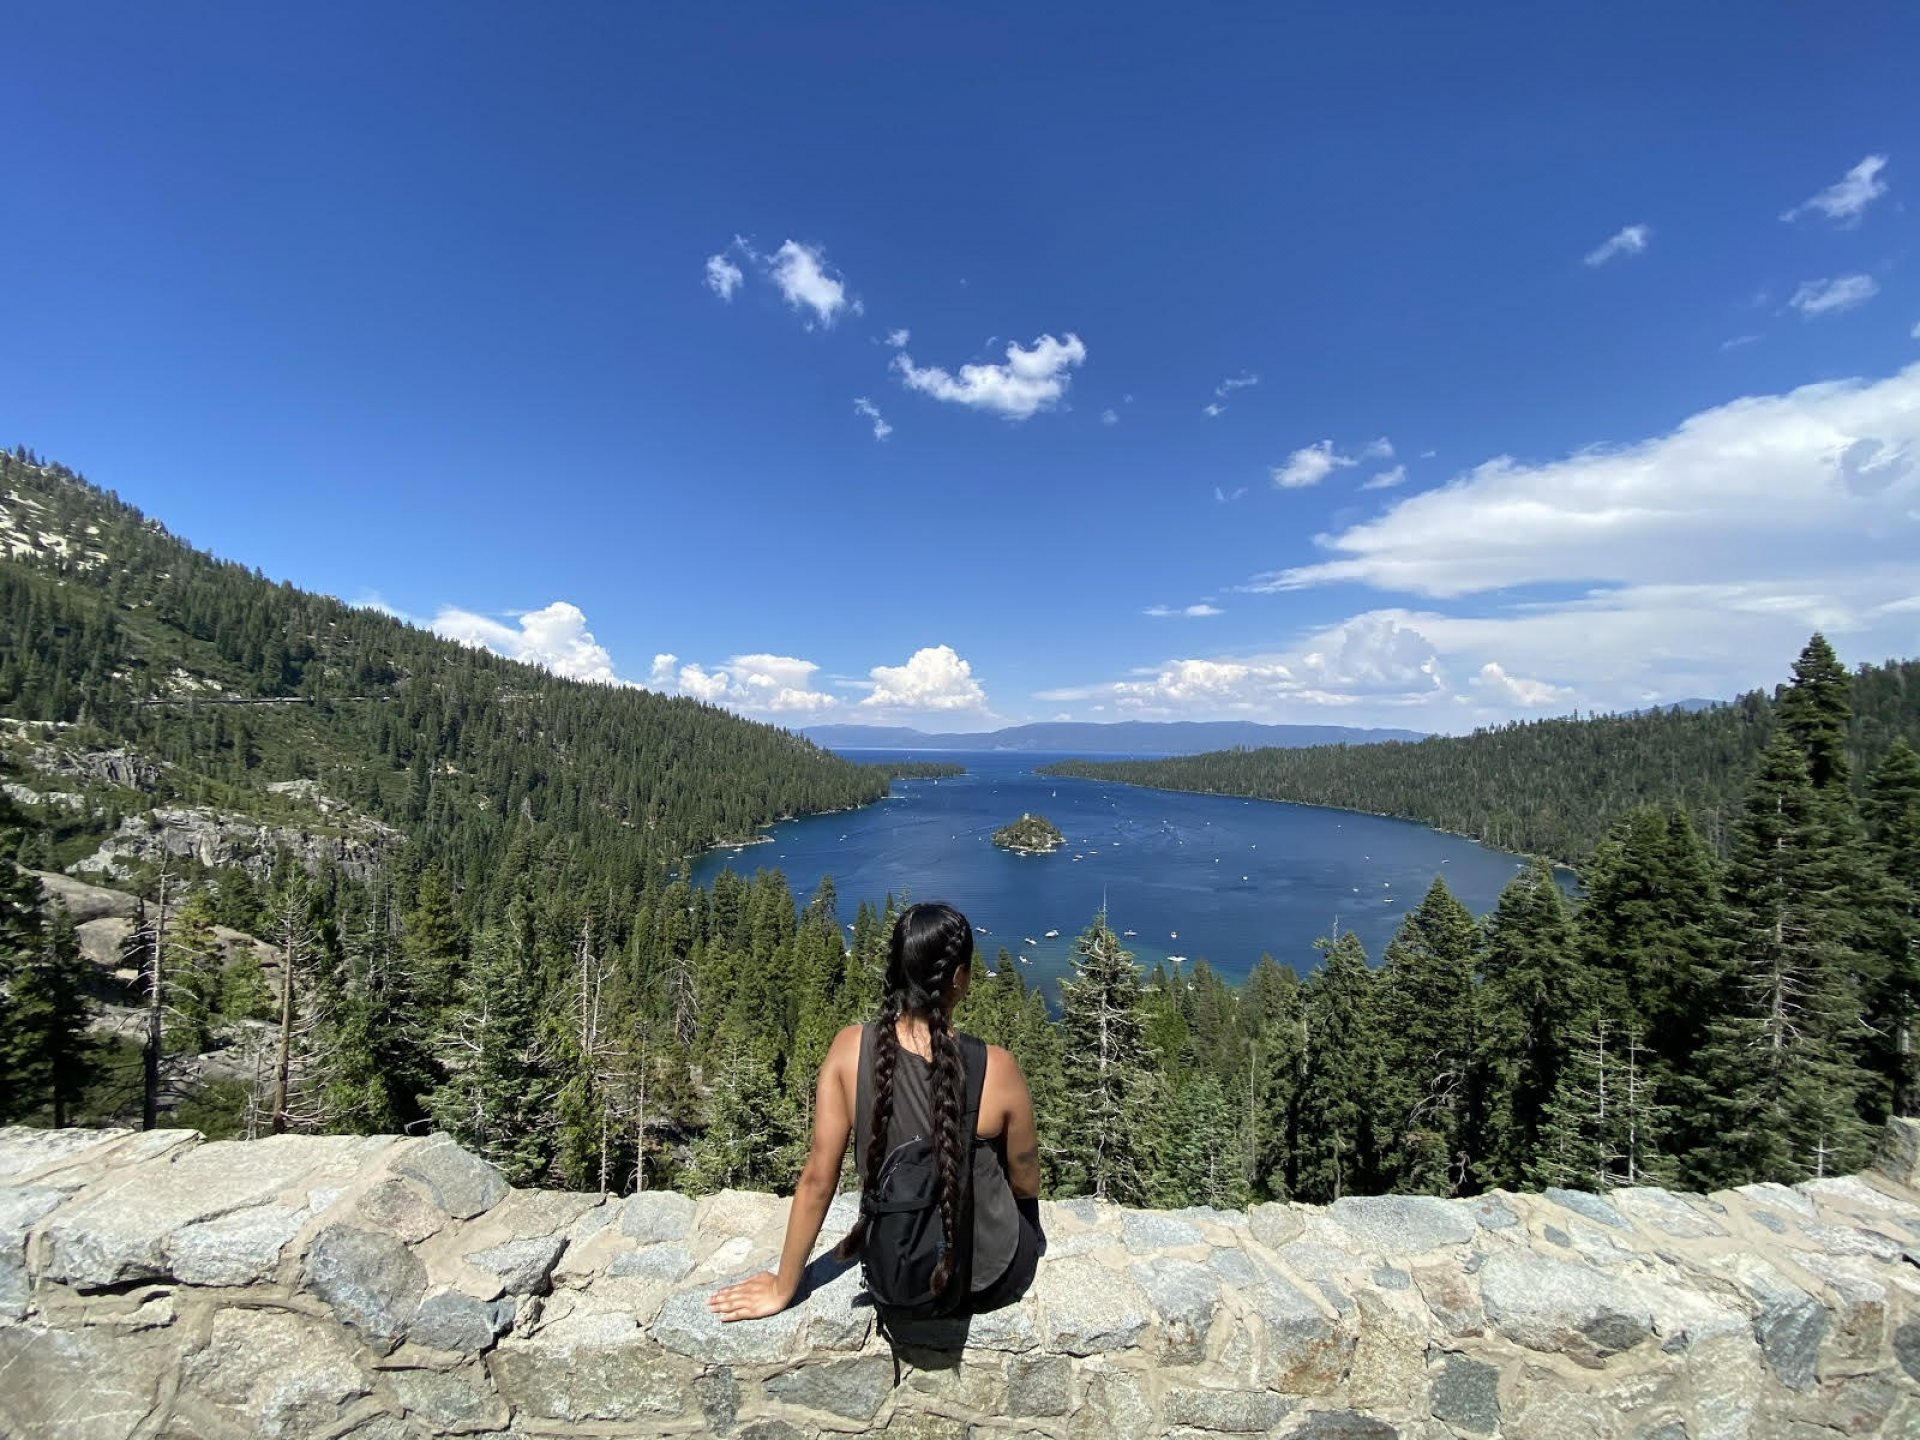 Sheila Camarena lives her life on the edge as she basks in the beauty of Lake Tahoe. | Photo courtesy of Sheila Camarena